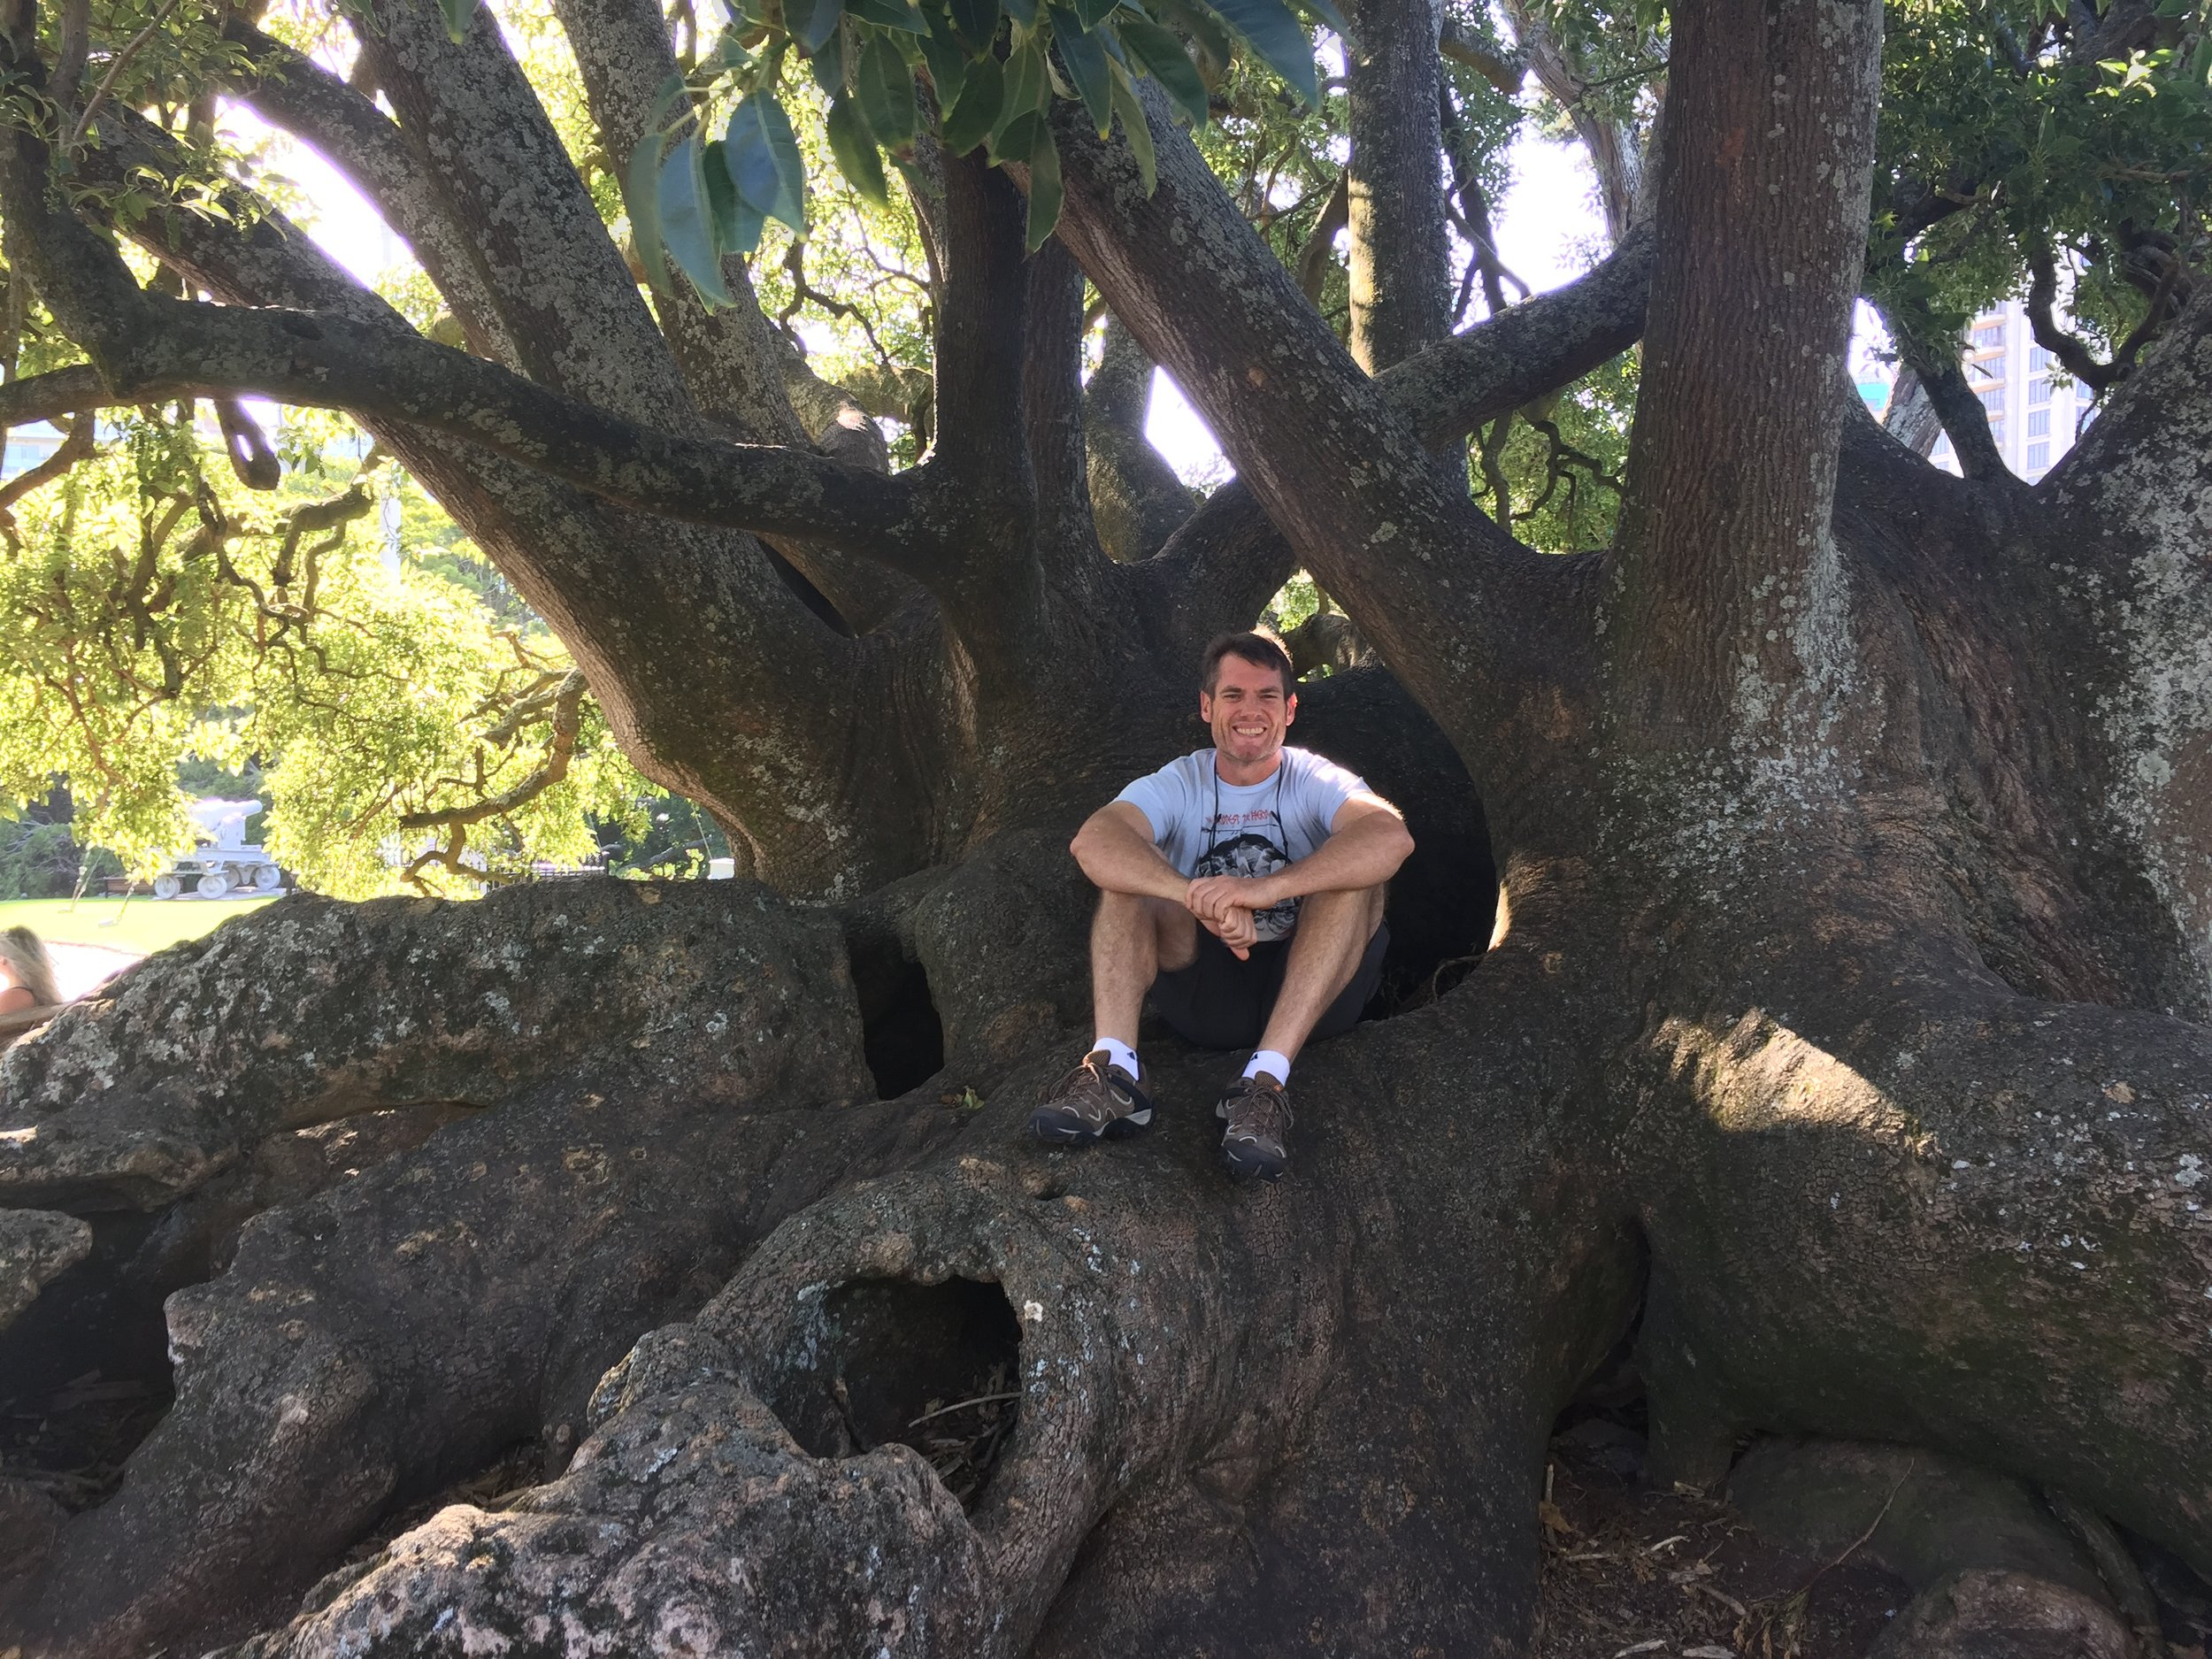 Never too old to climb trees